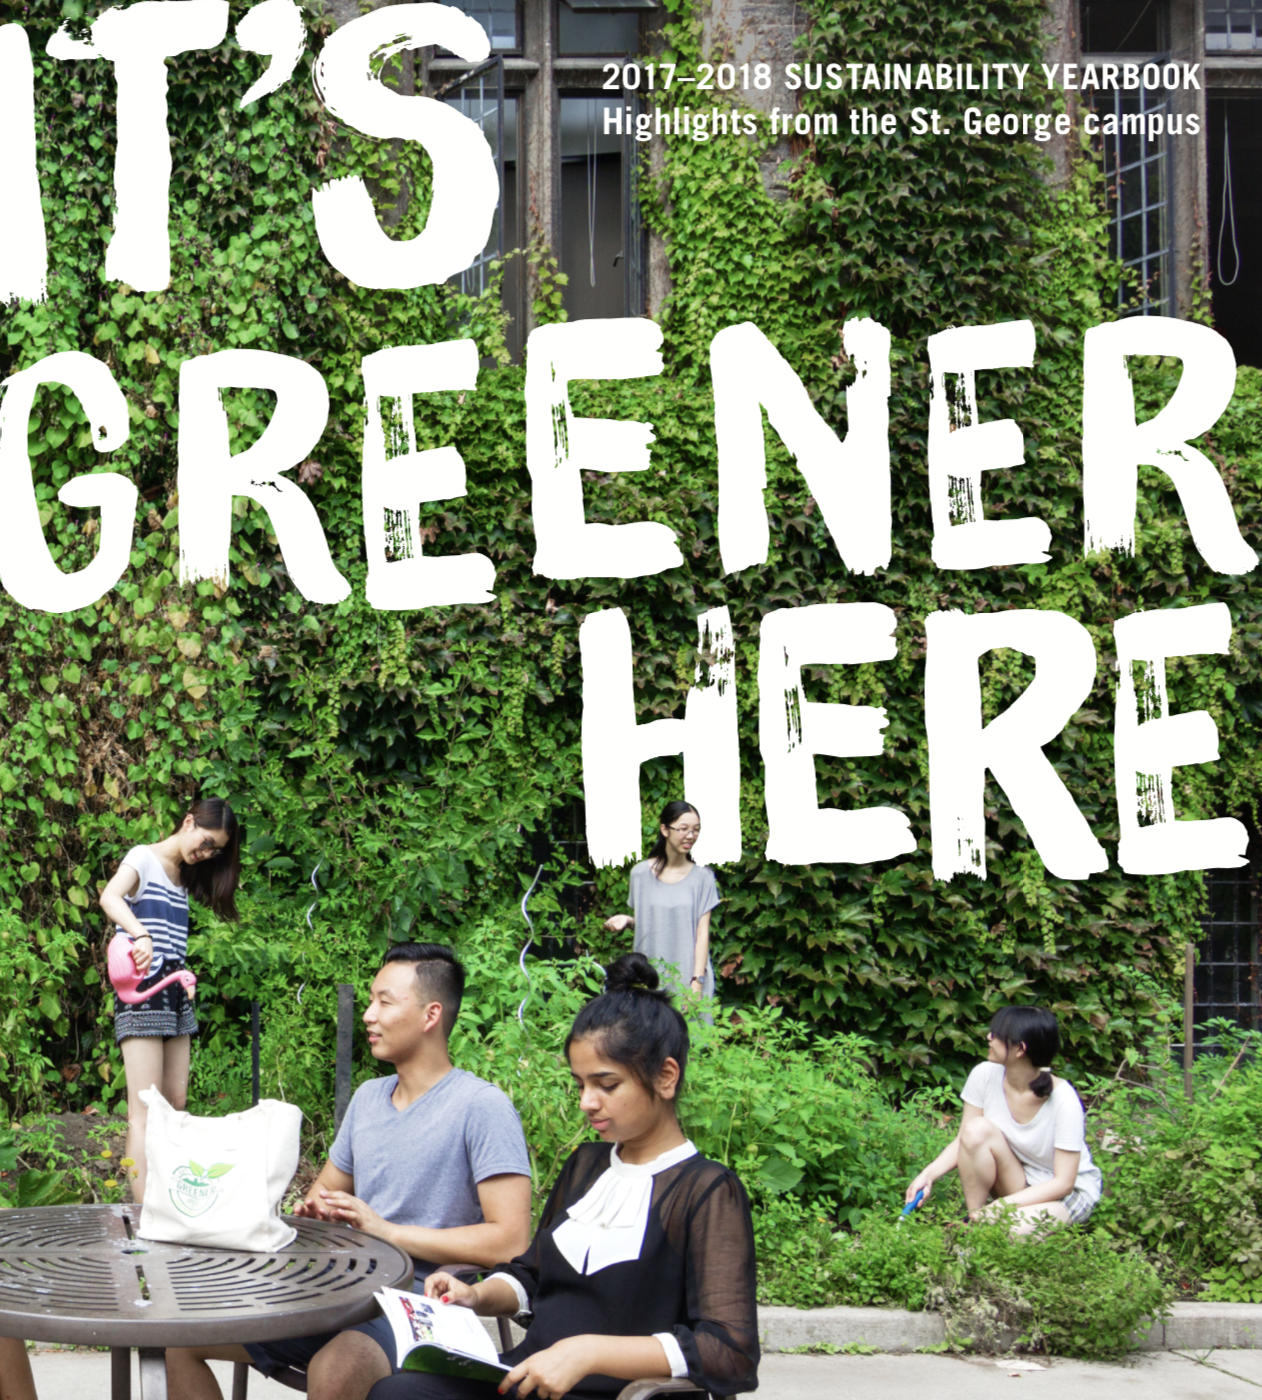 2017-2018 Sustainability Yearbook Cover with students posed in front of a green wall